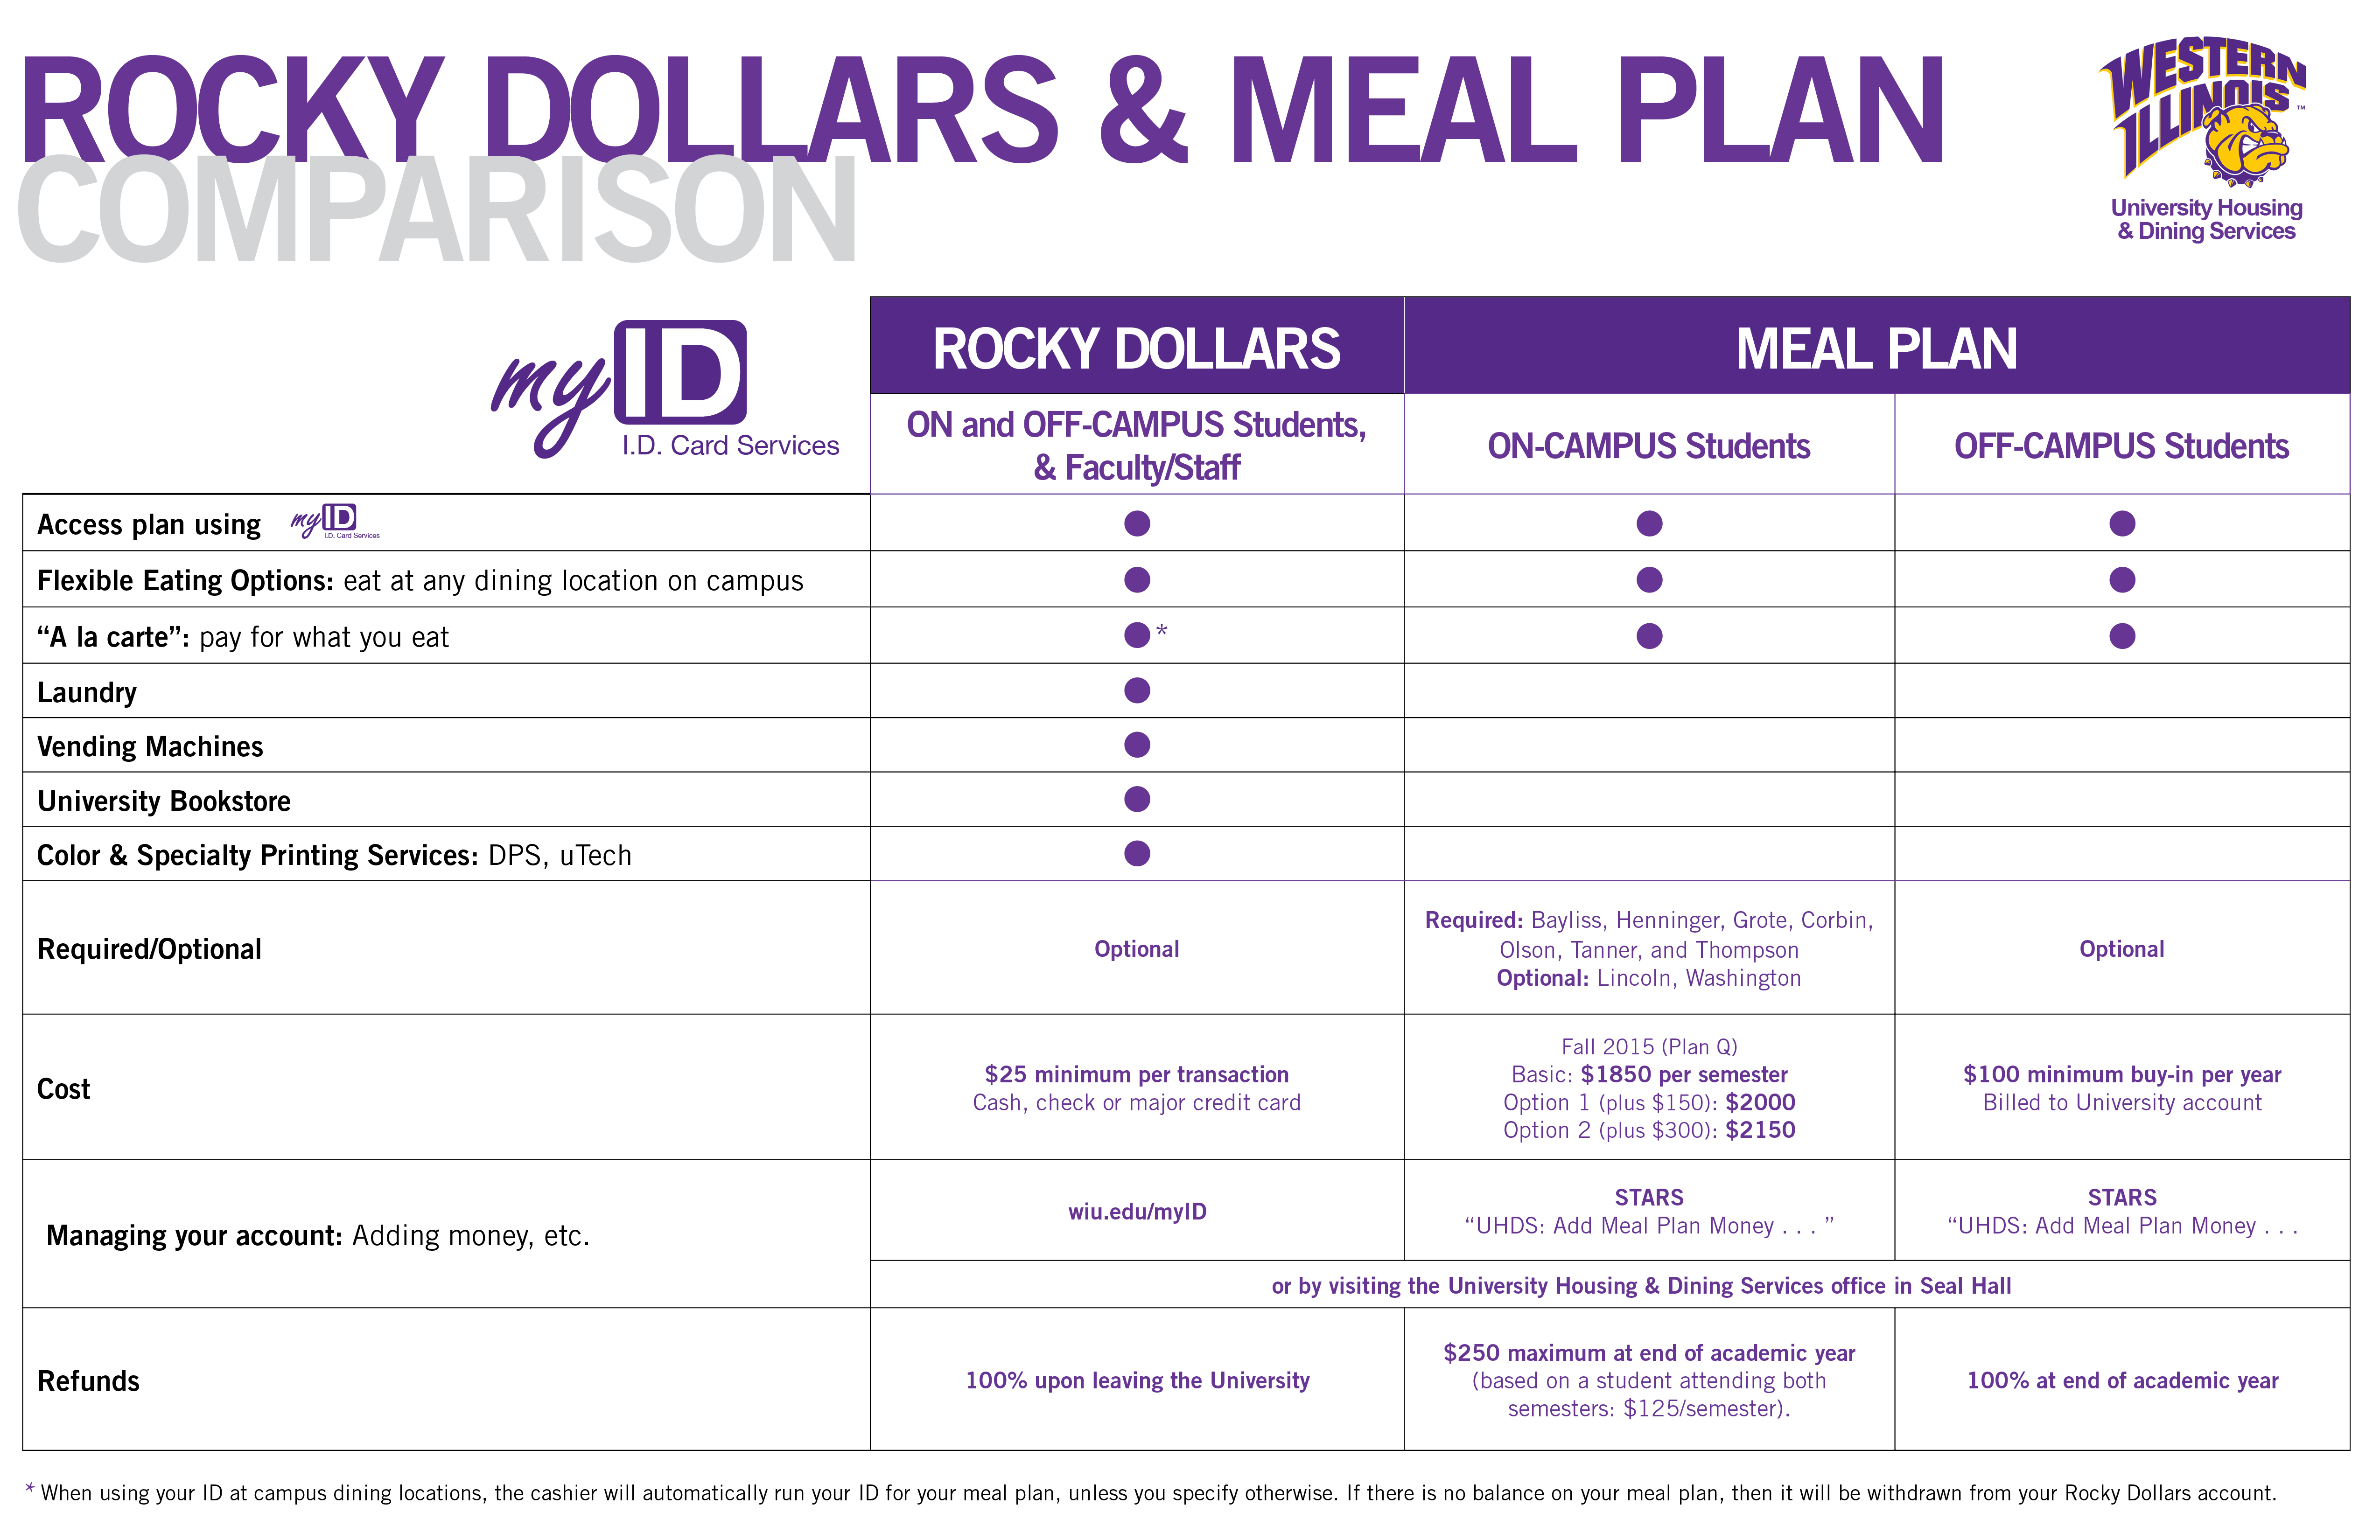 Table comparing meal plan and Rocky Dollars